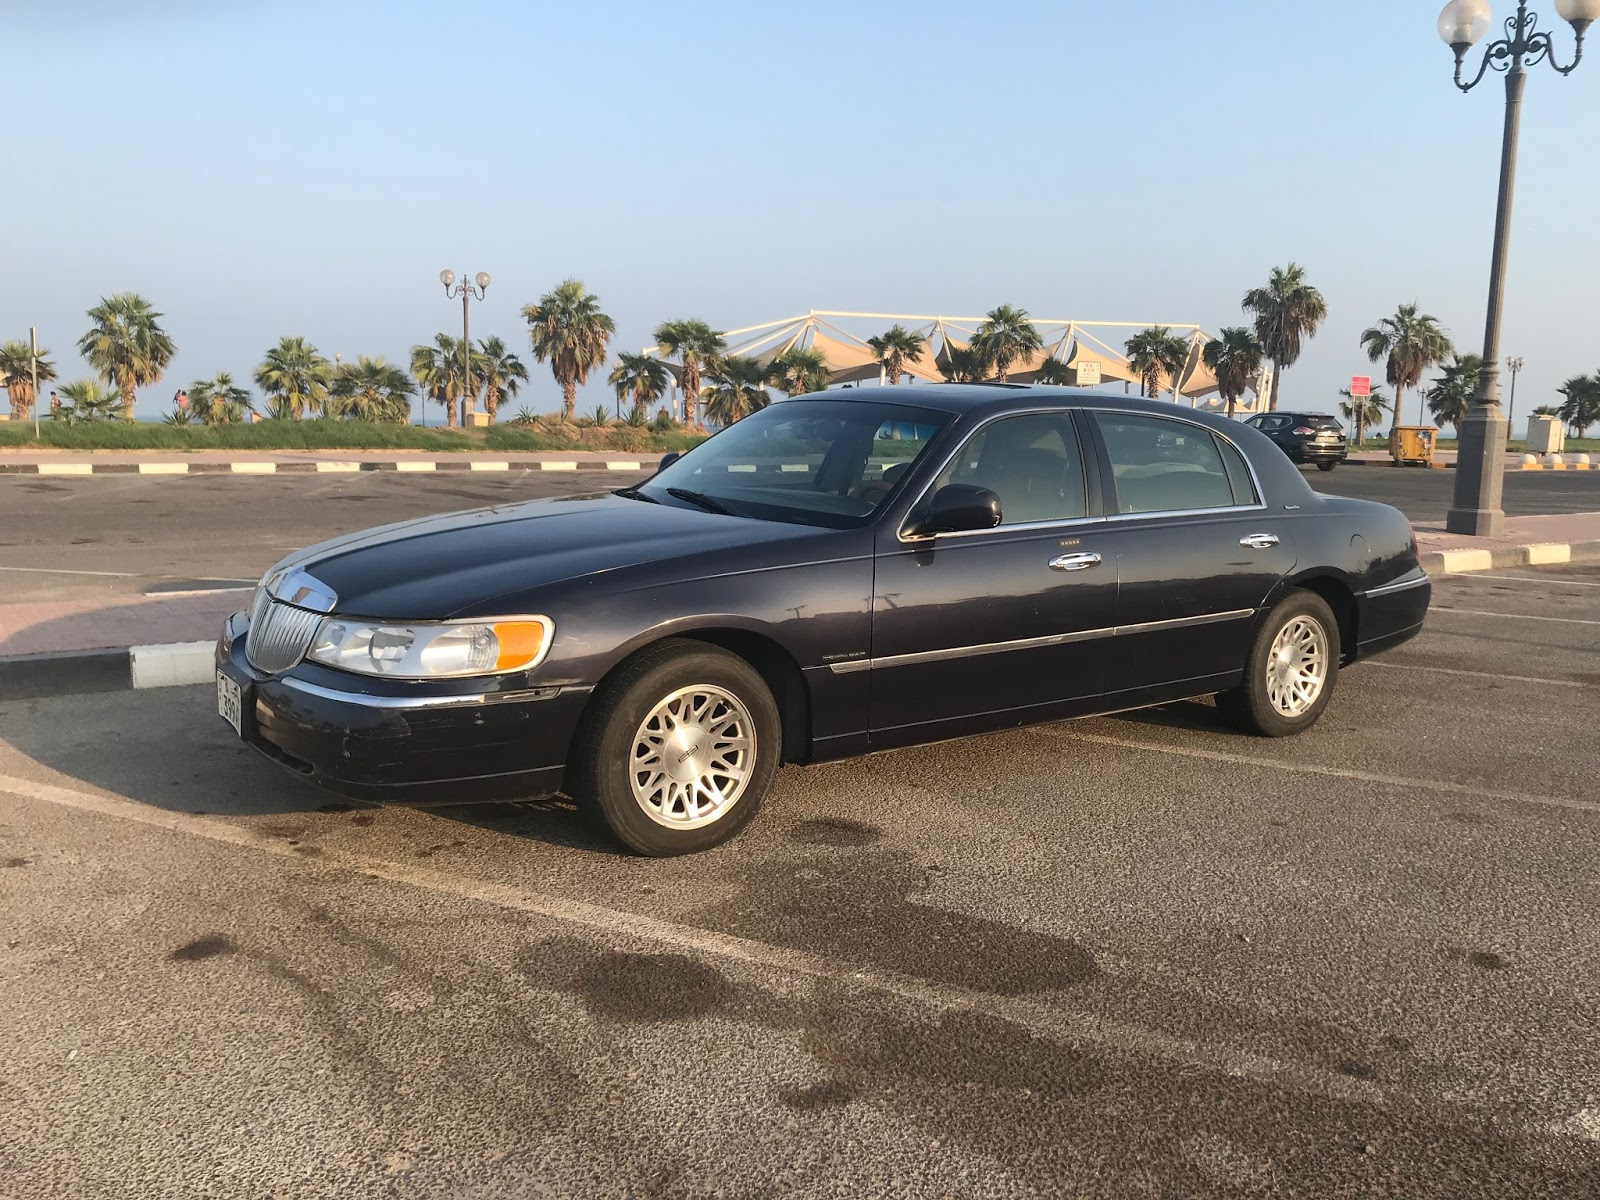 hight resolution of so in the spirit of the blues i just acquired my own bluesmobile a 1999 lincoln town car signature edition in fantastic condition